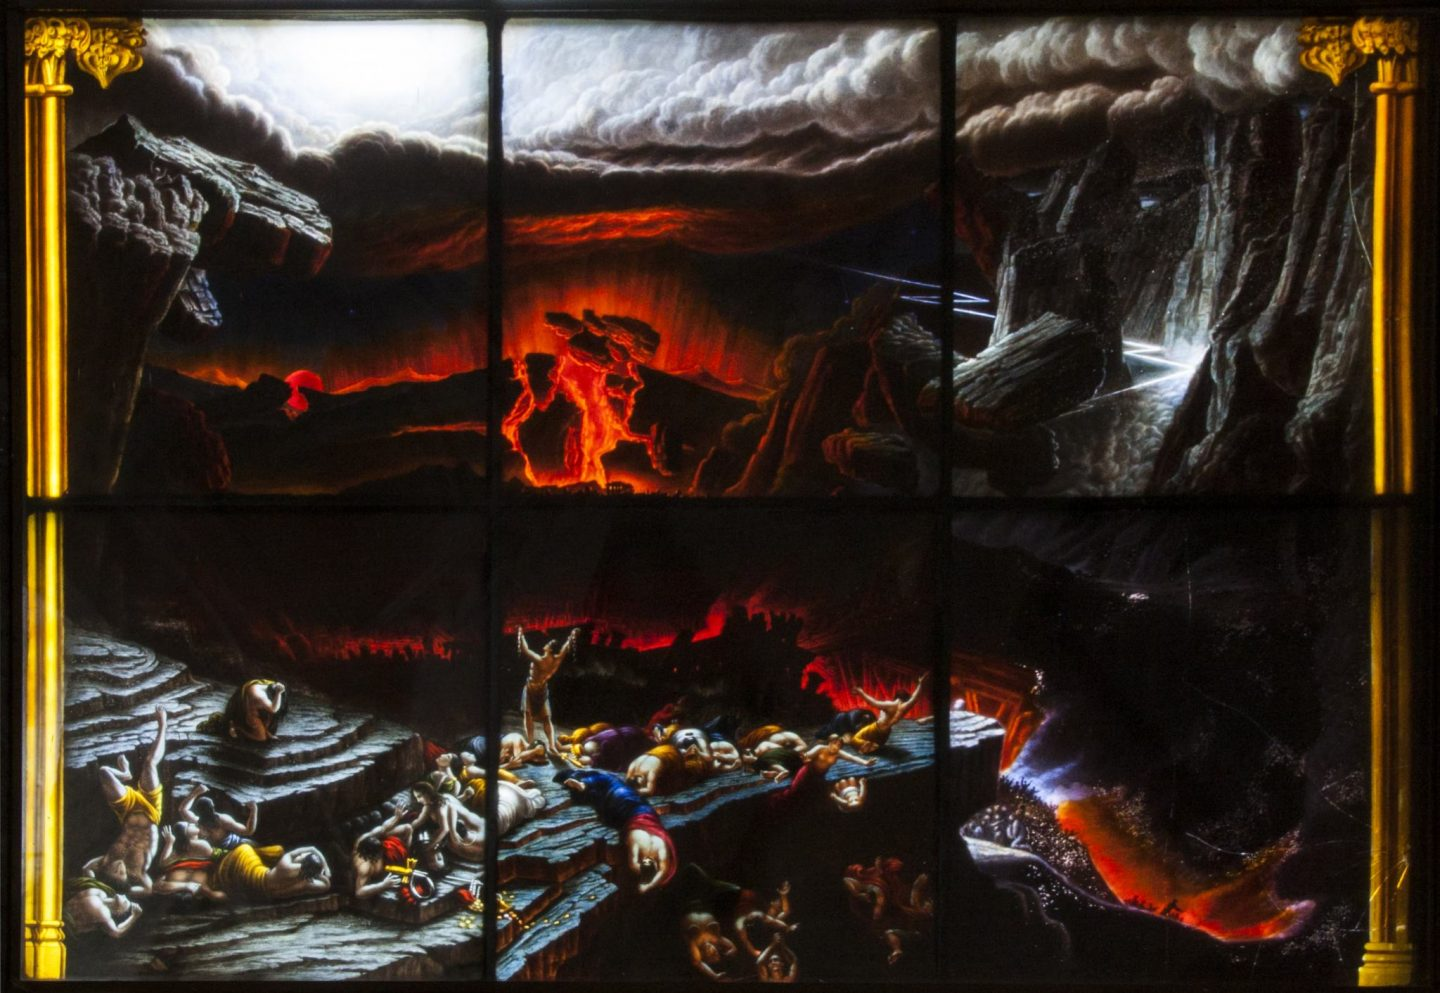 The Apocalypse Scene of the main panel of the East window of Redbourne Church. Bodies lay strewn on rocks in the foreground, while the sky cracks open with red clouds in the background.